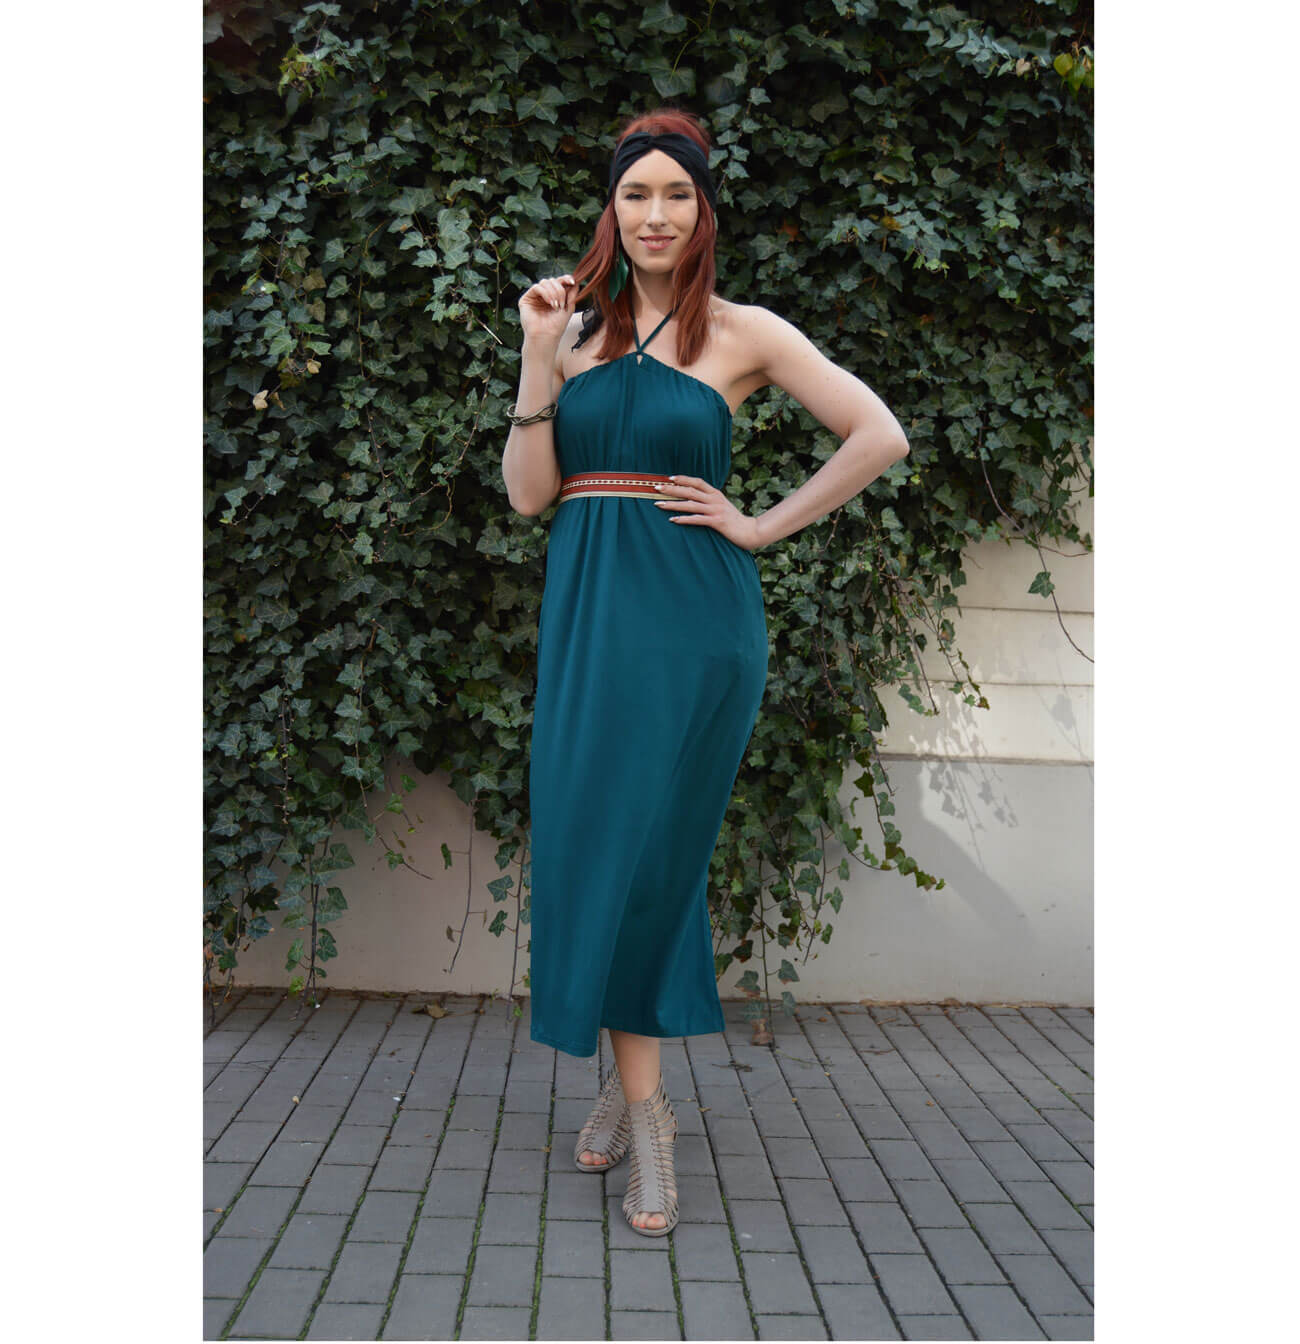 Emerald halter neck dress that you can wear in many ways